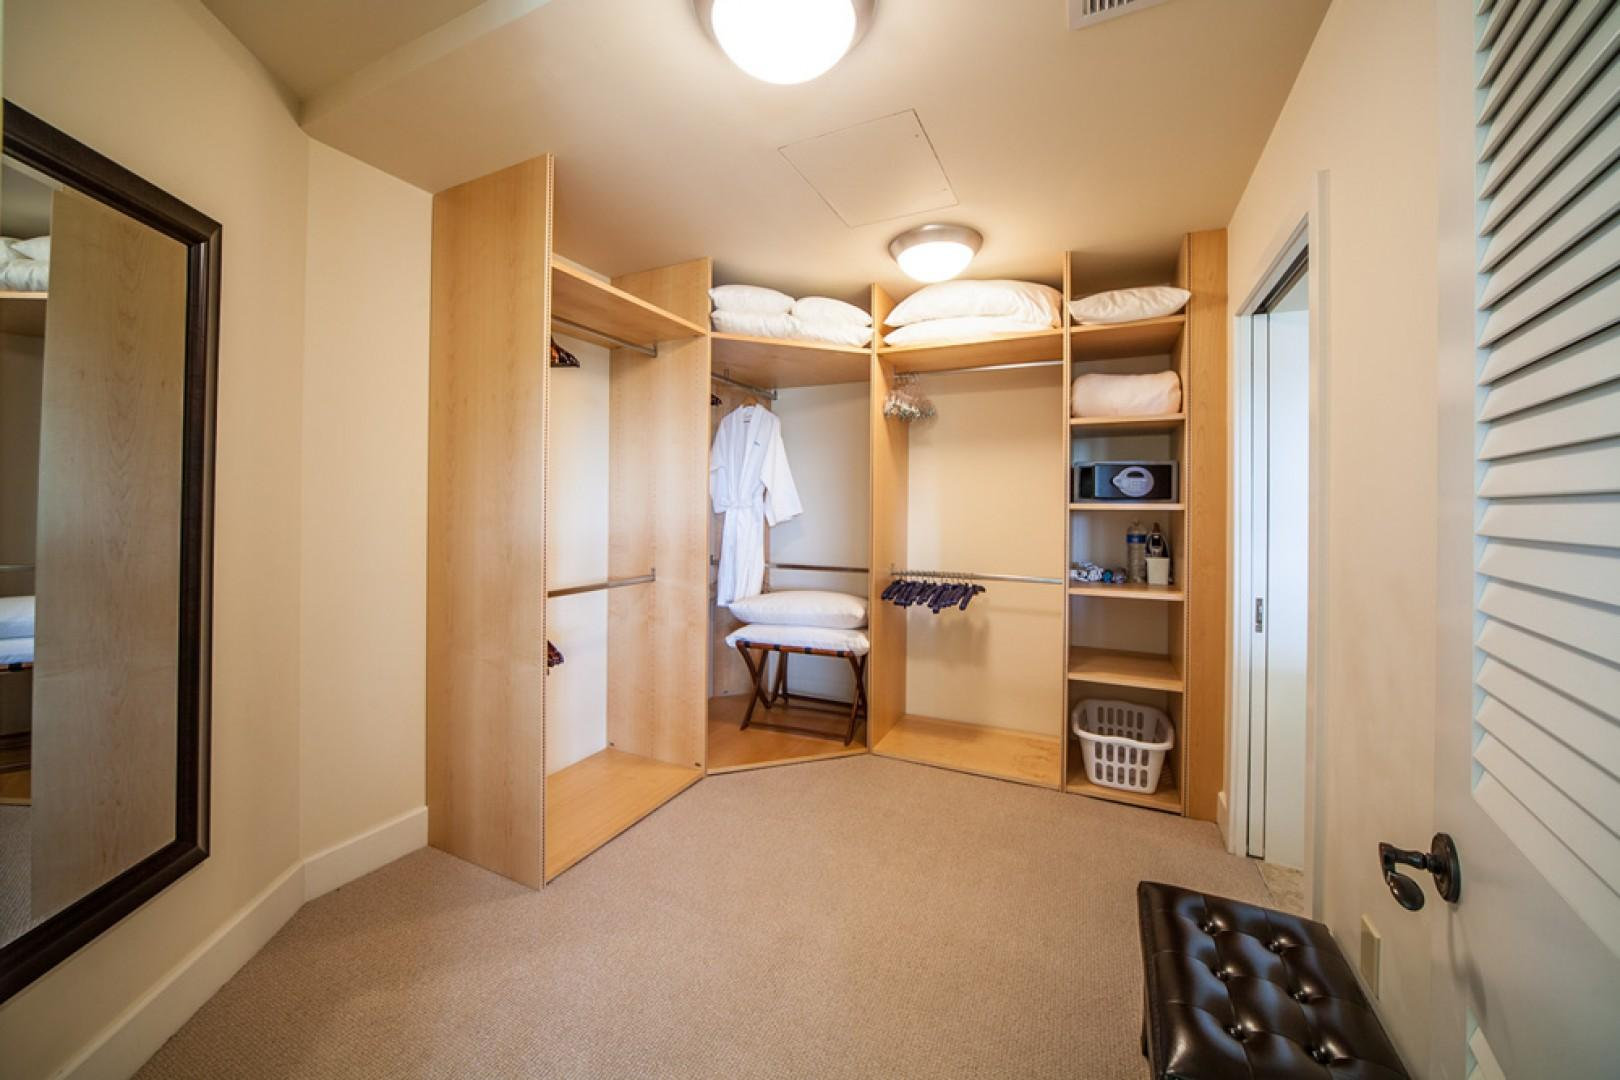 Blue Horizons K308 - Master Bedroom Walk-in Closet with Extra Pillows, Blankets, Abundant Hangers, Safe, Iron/Board